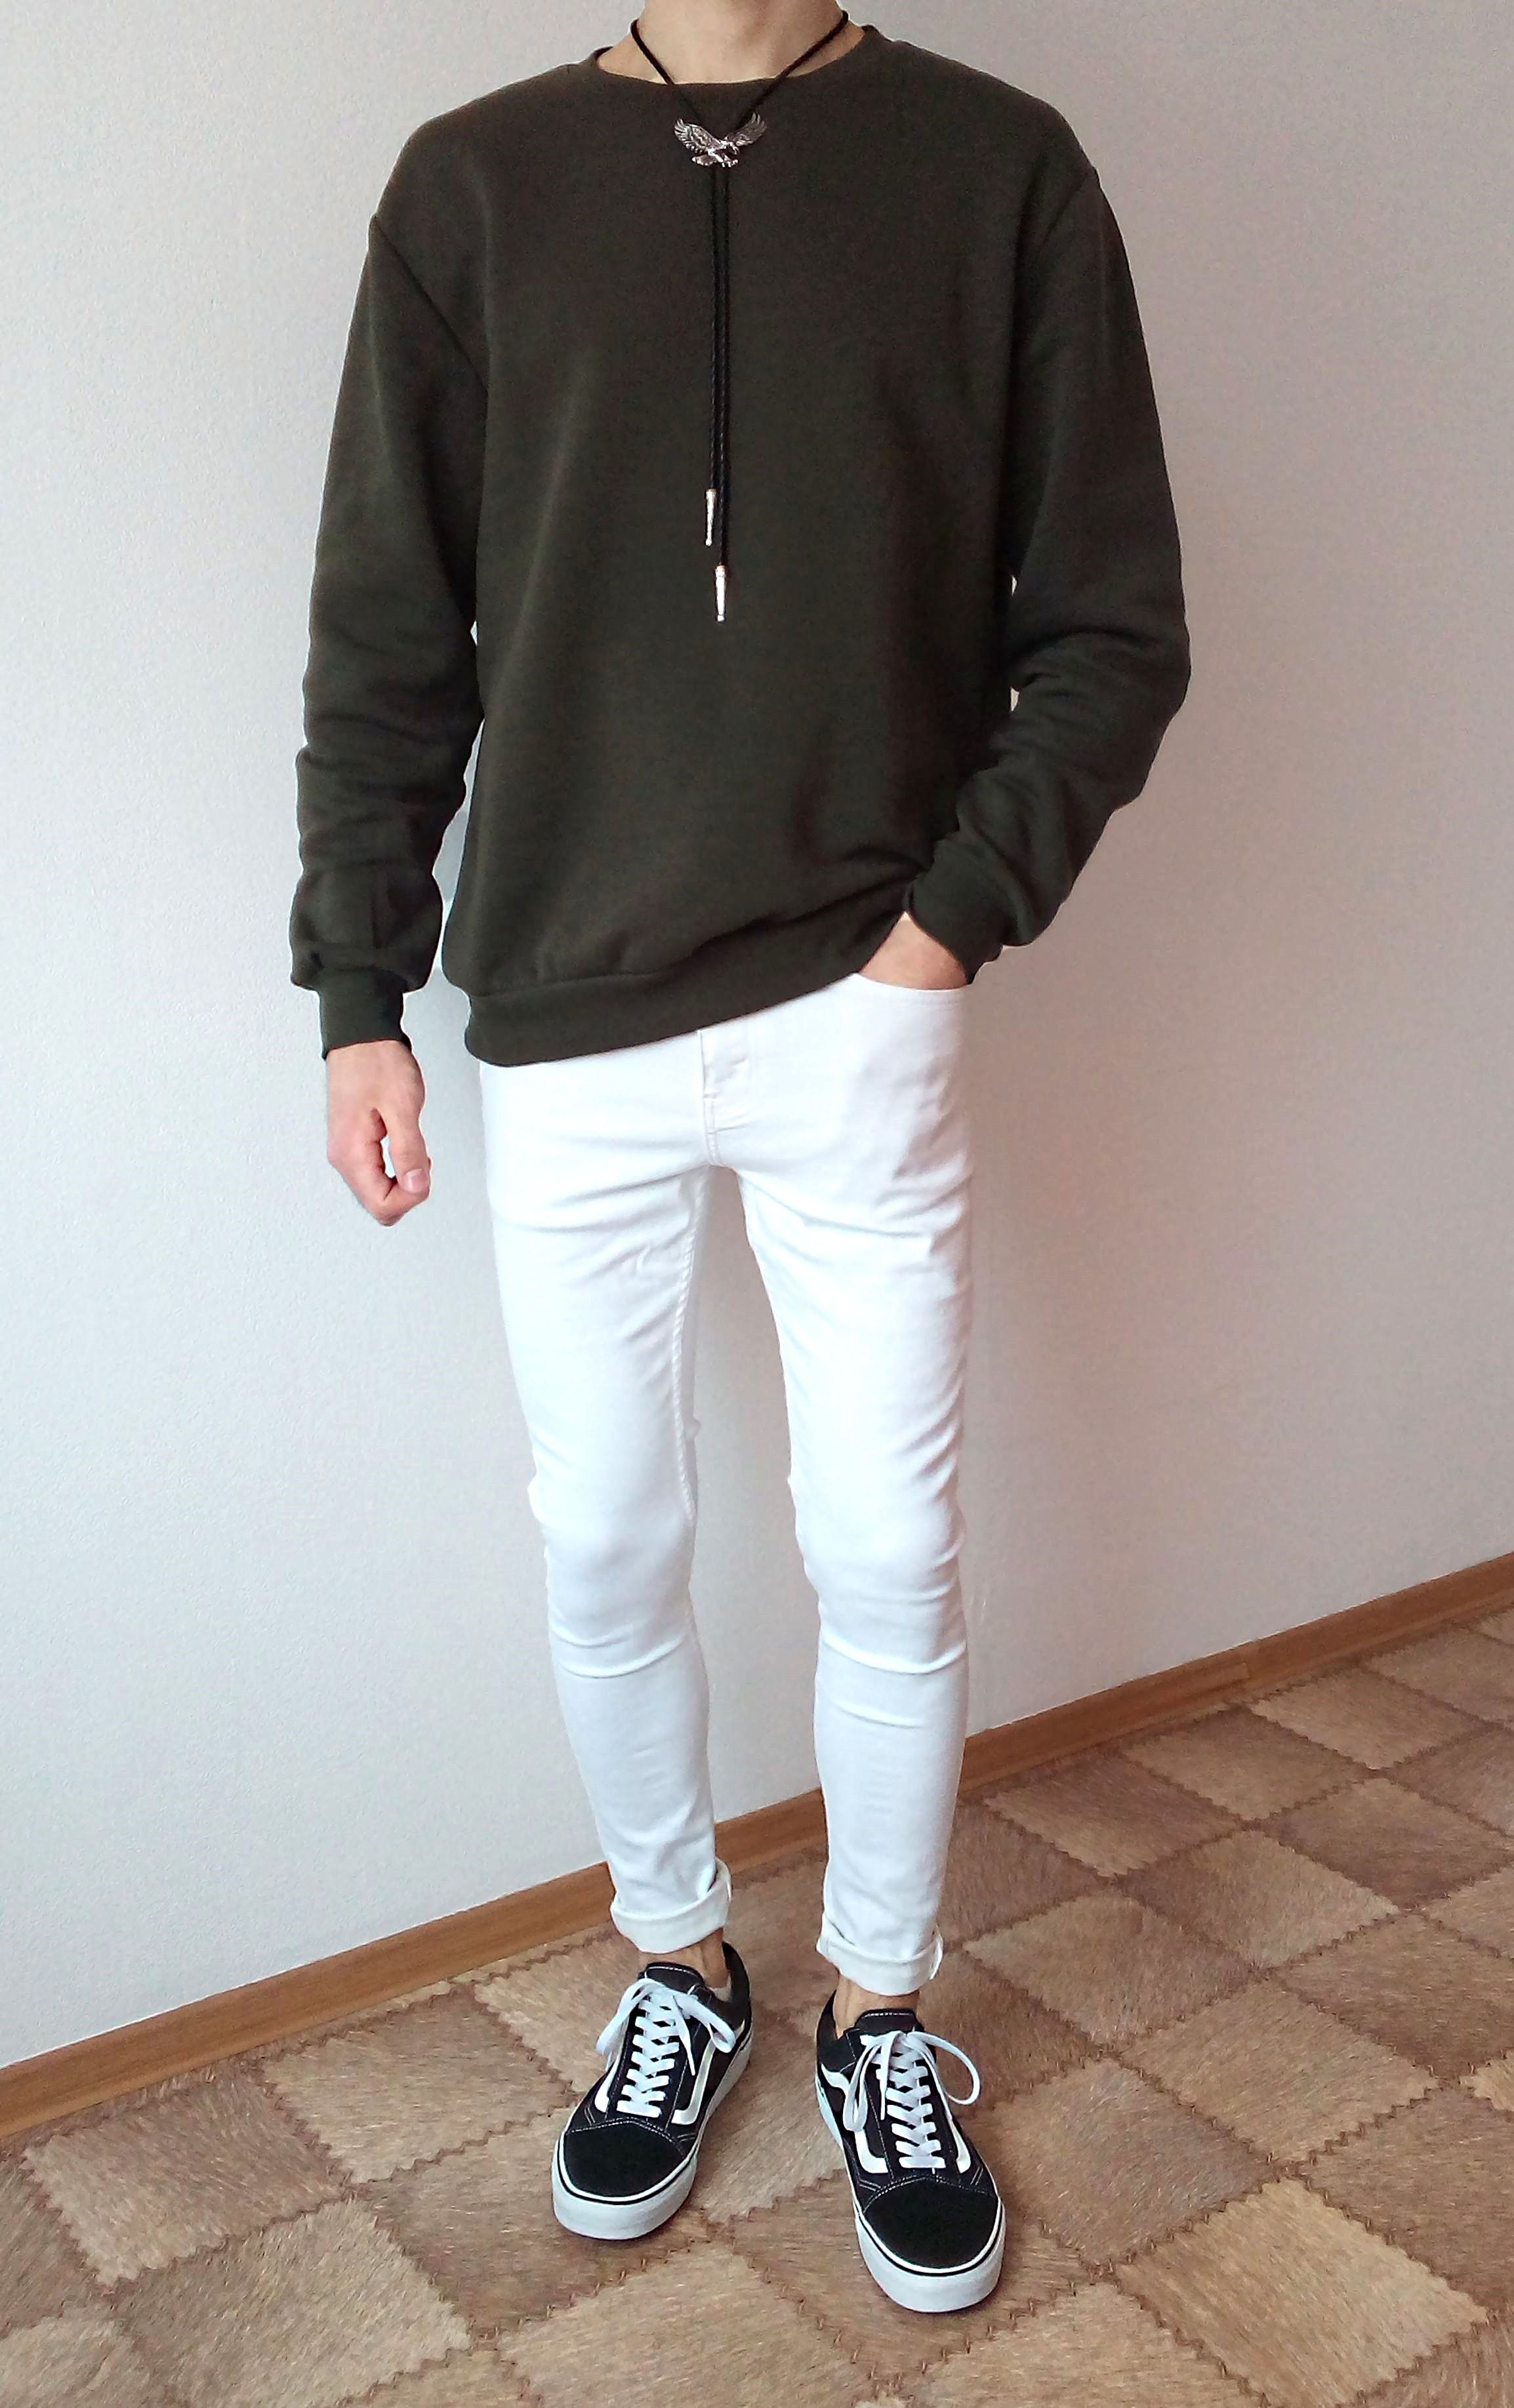 vans old skool white skinny jeans boys guys outfit | vans